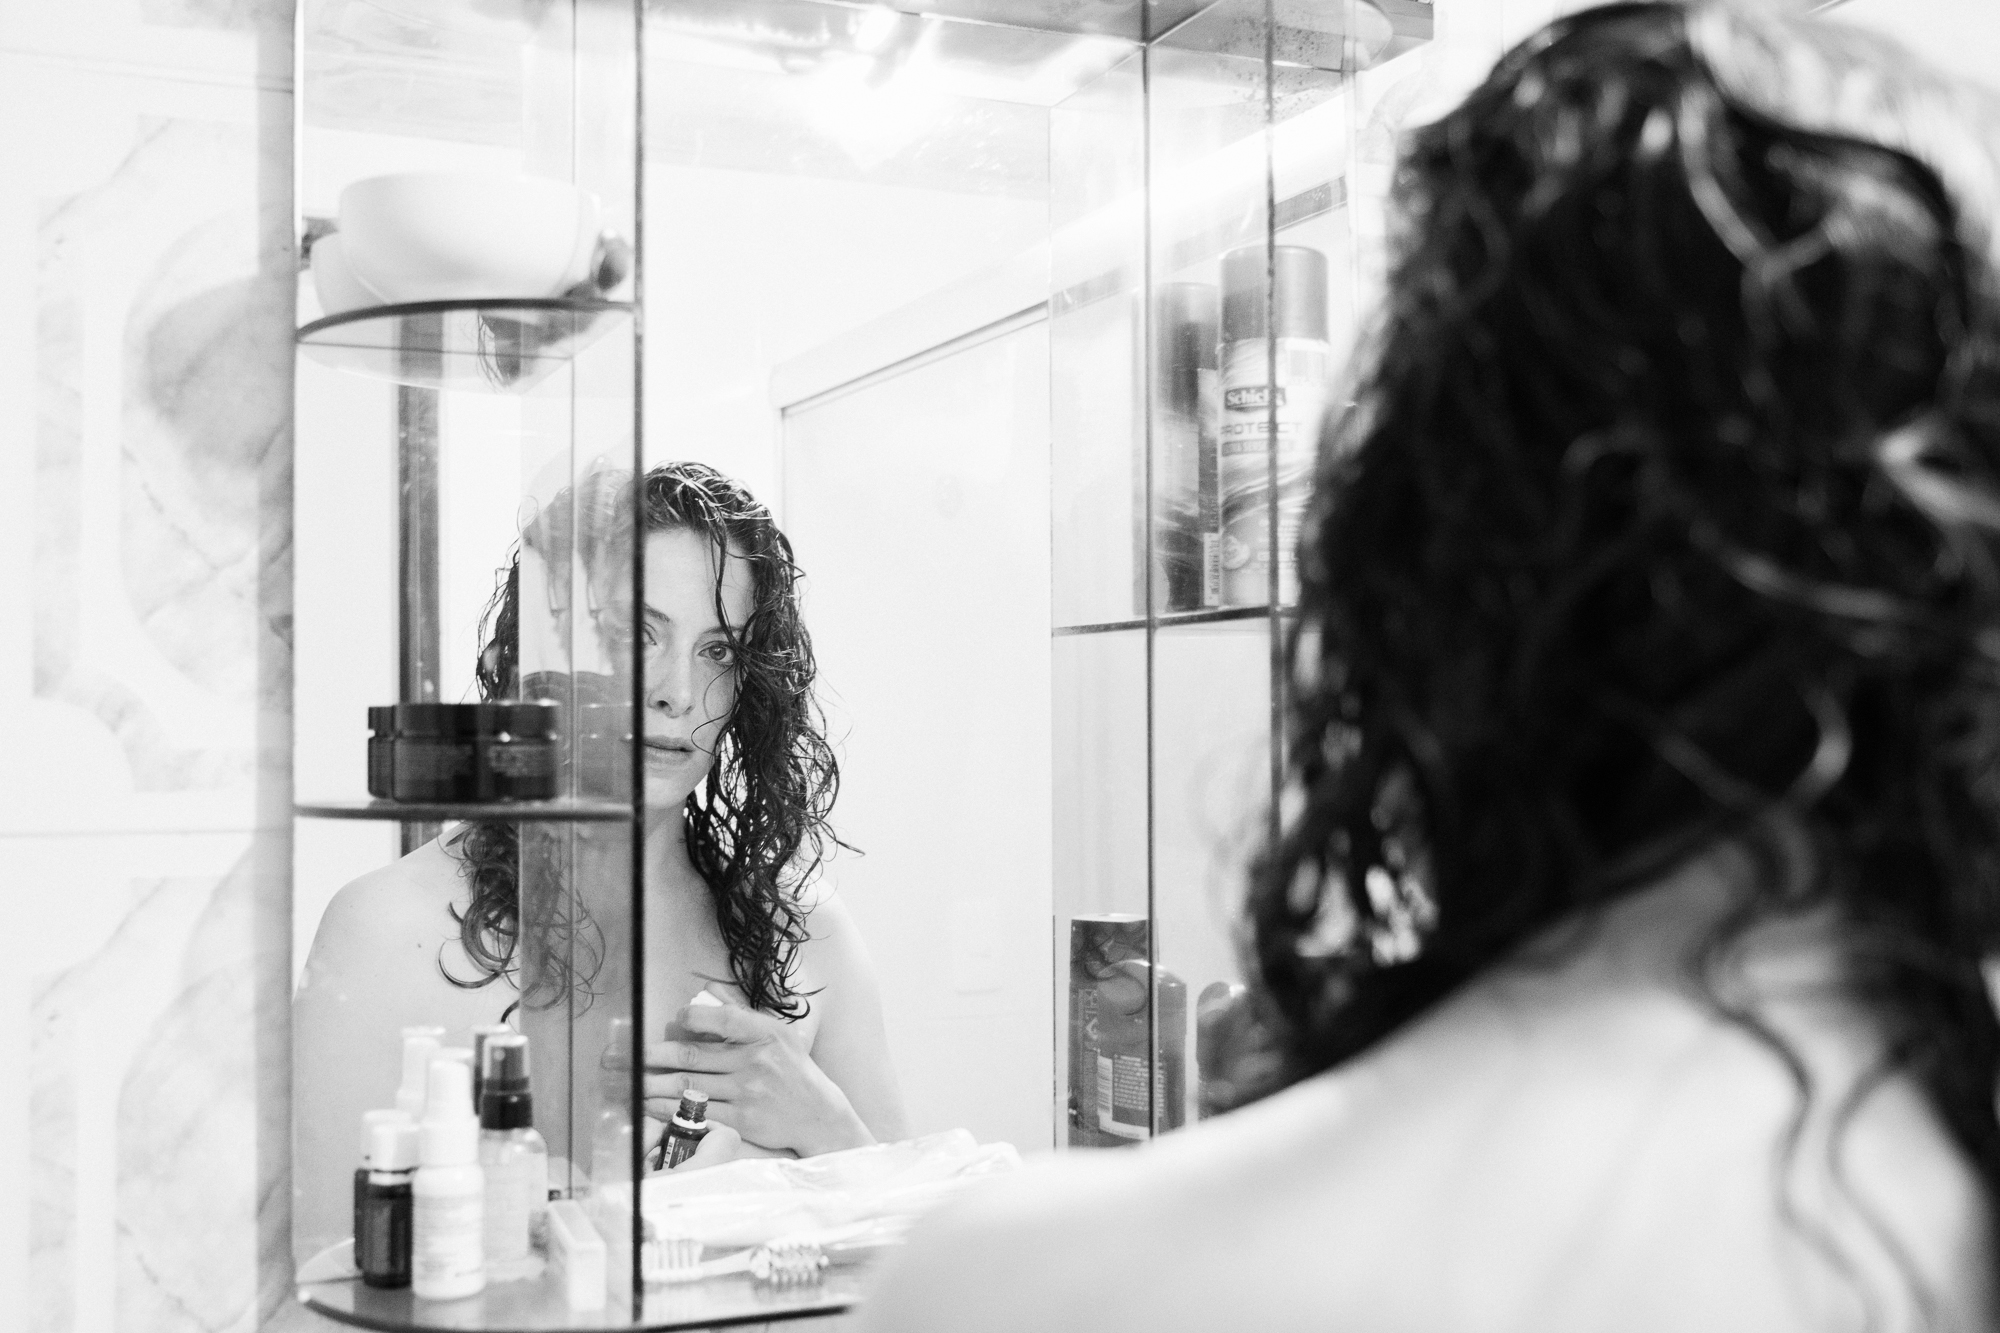 20161230__A Day In The Life_X-Pro2_0534.jpg